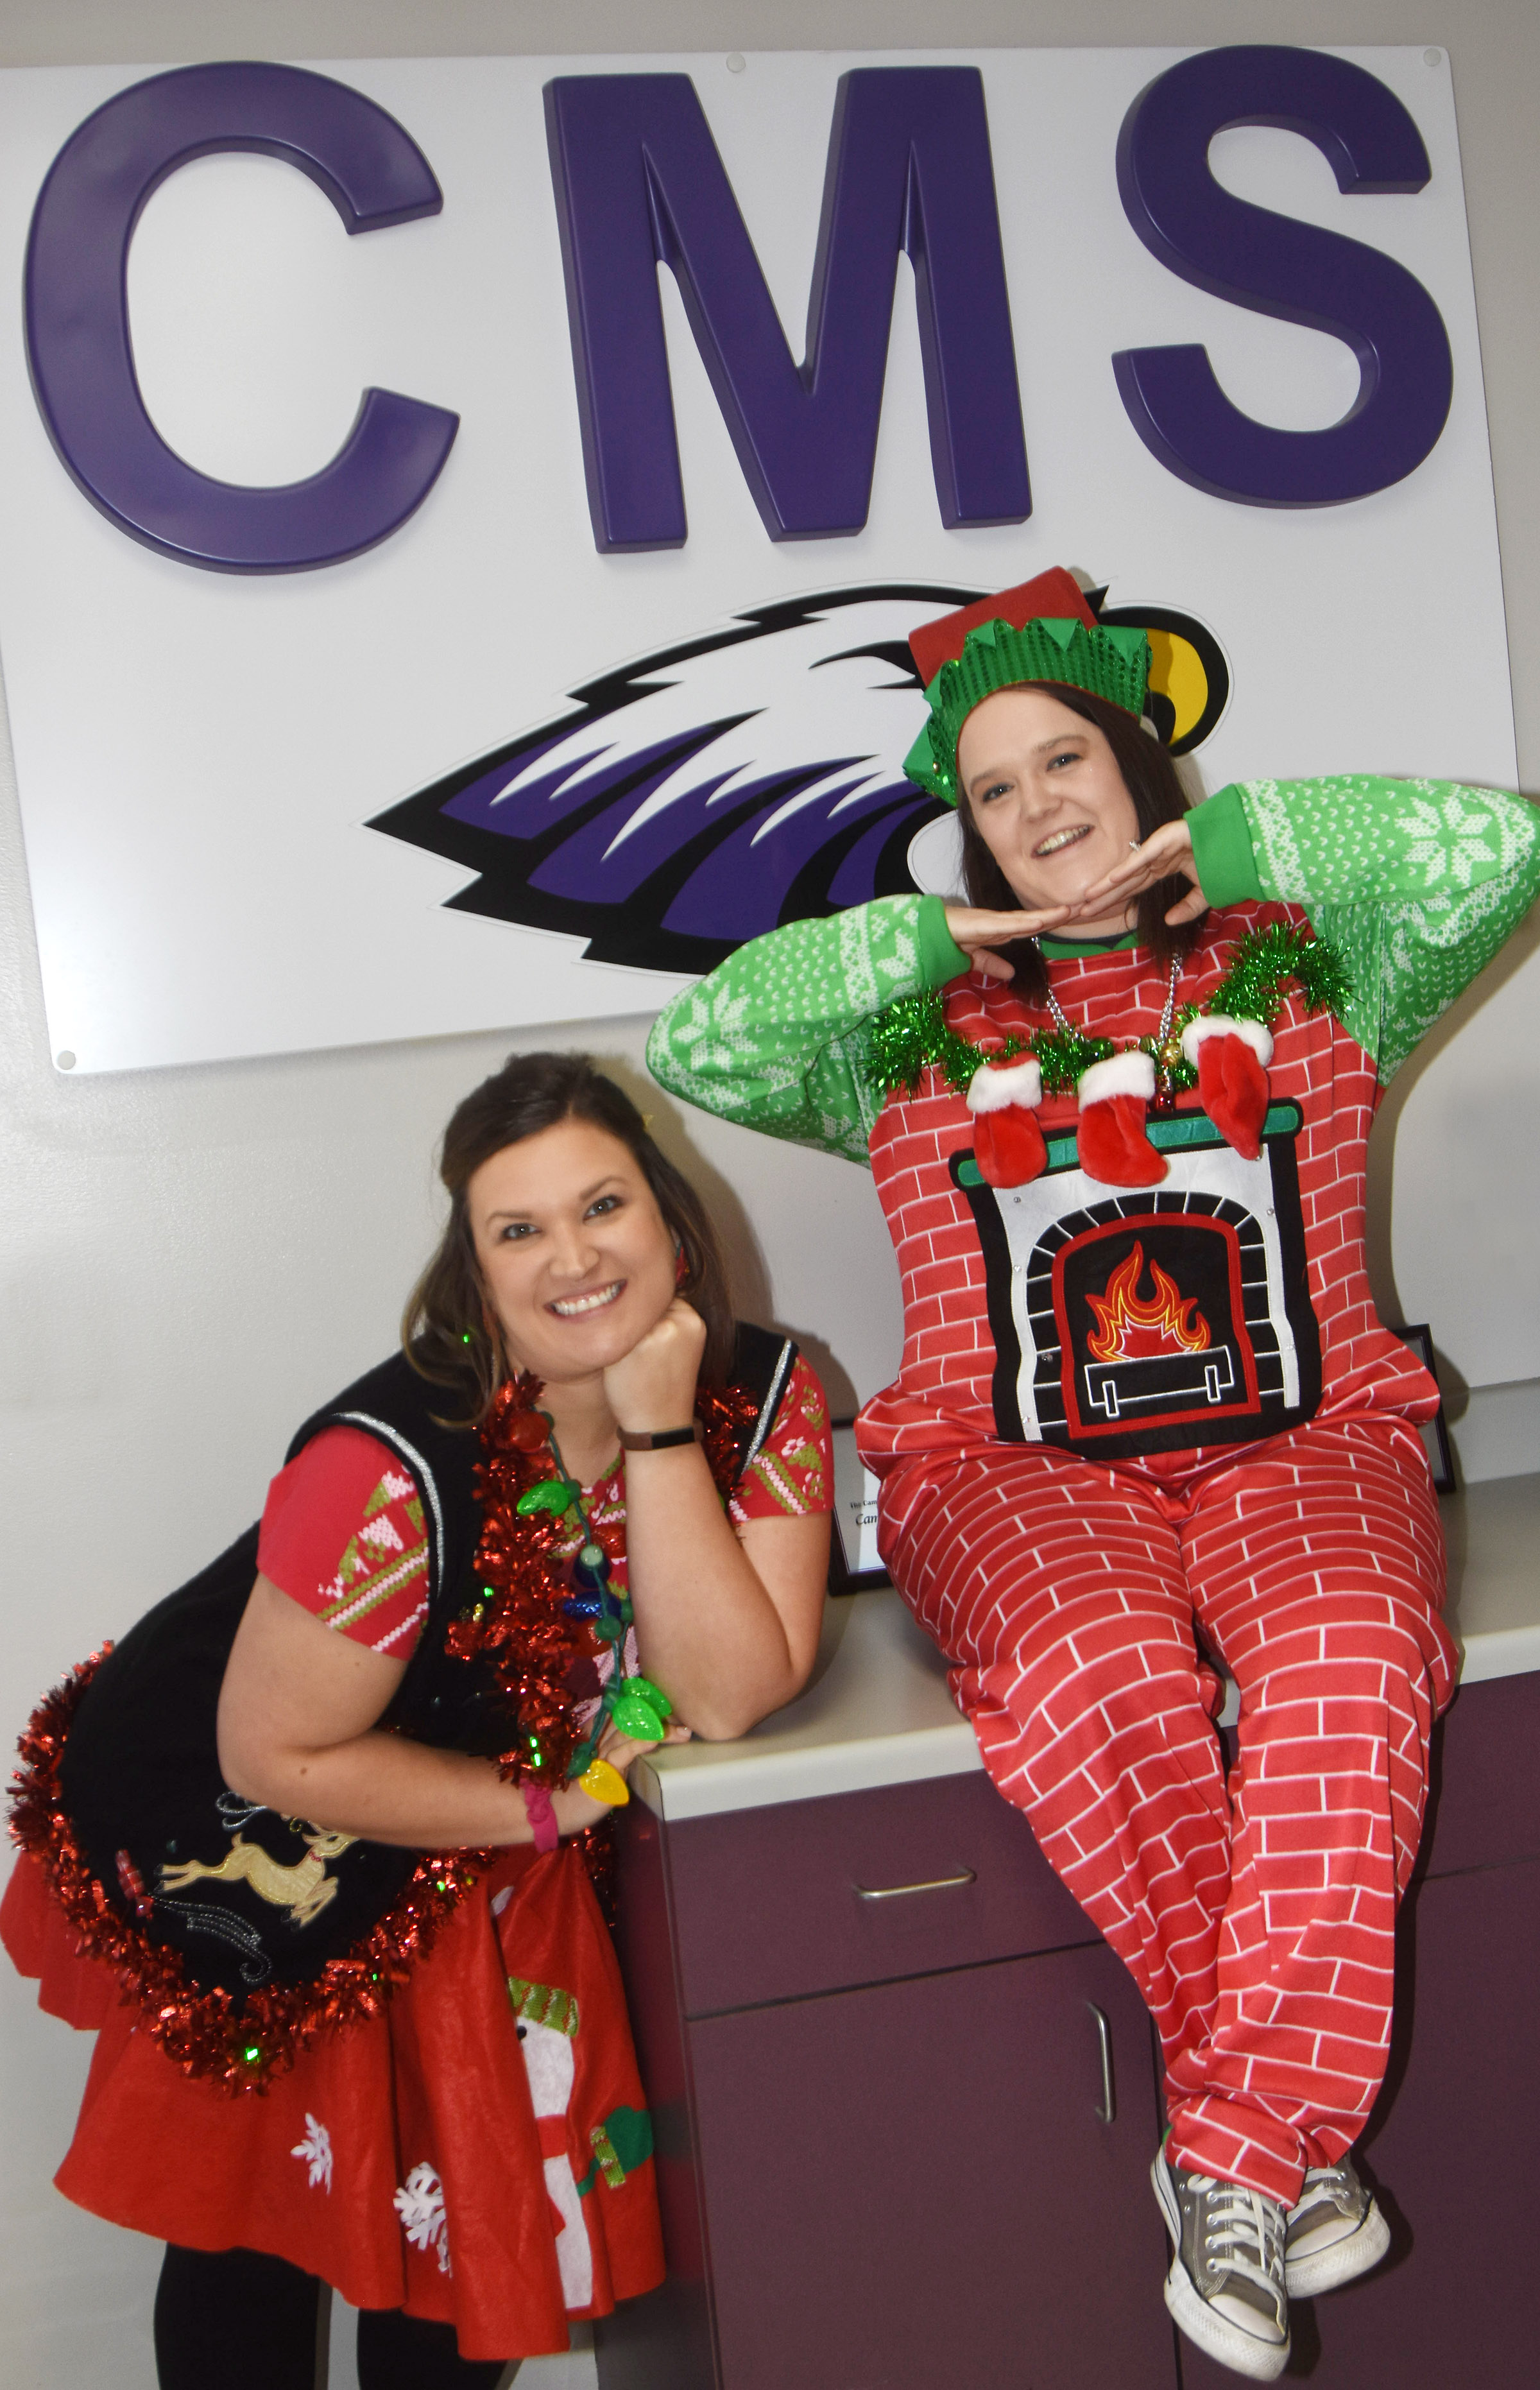 CMS eighth-grade teachers Robbilyn Speer, at left, and Paige Cook pose in their Christmas attire.